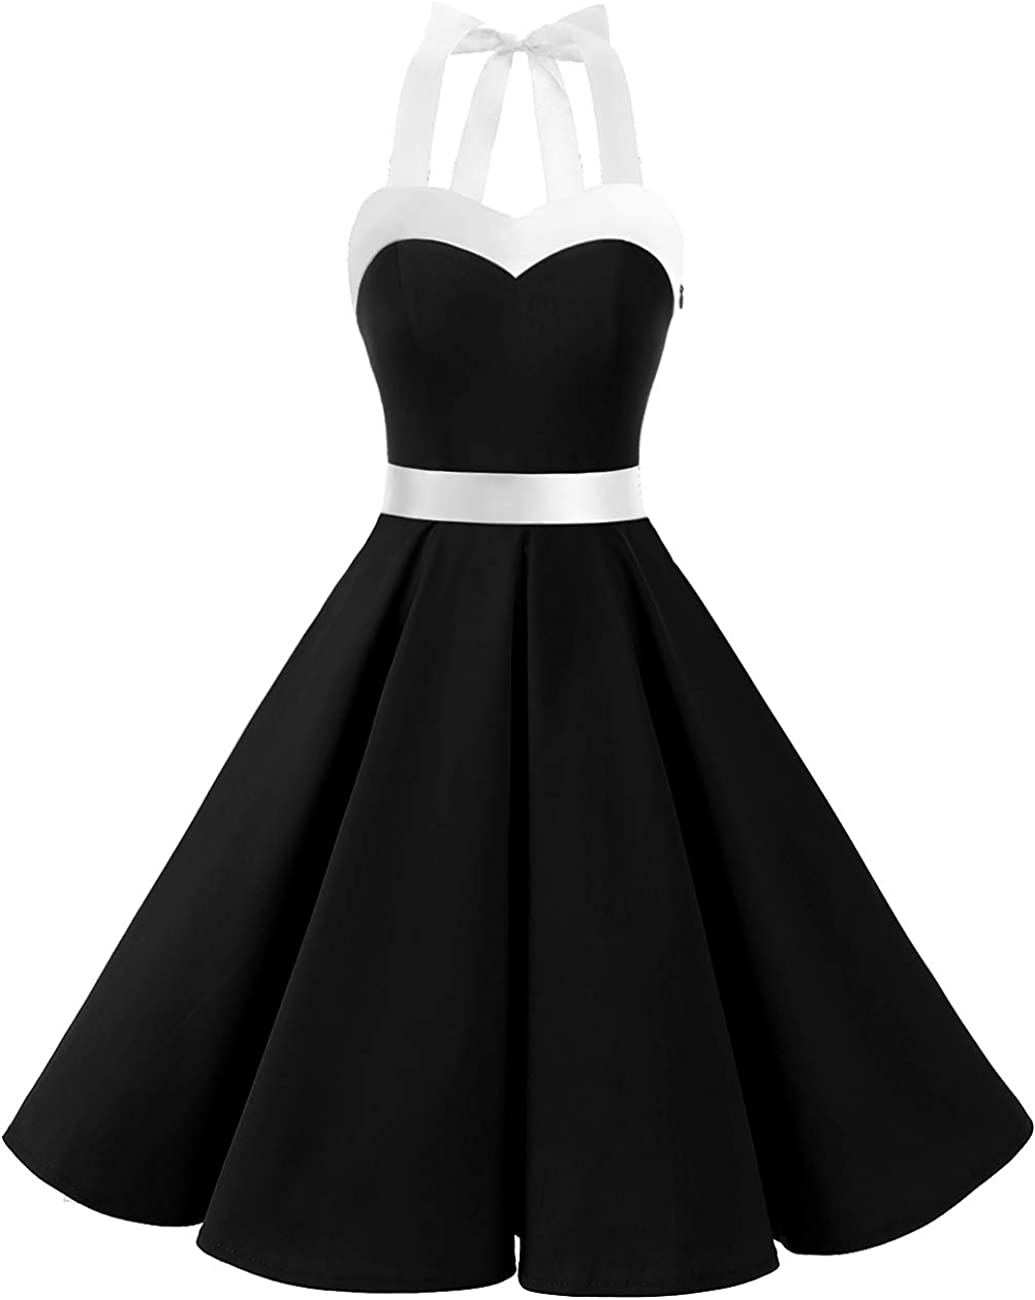 TALLA XXL. Dresstells® Halter 50s Rockabilly Polka Dots Audrey Dress Retro Cocktail Dress Black White XXL